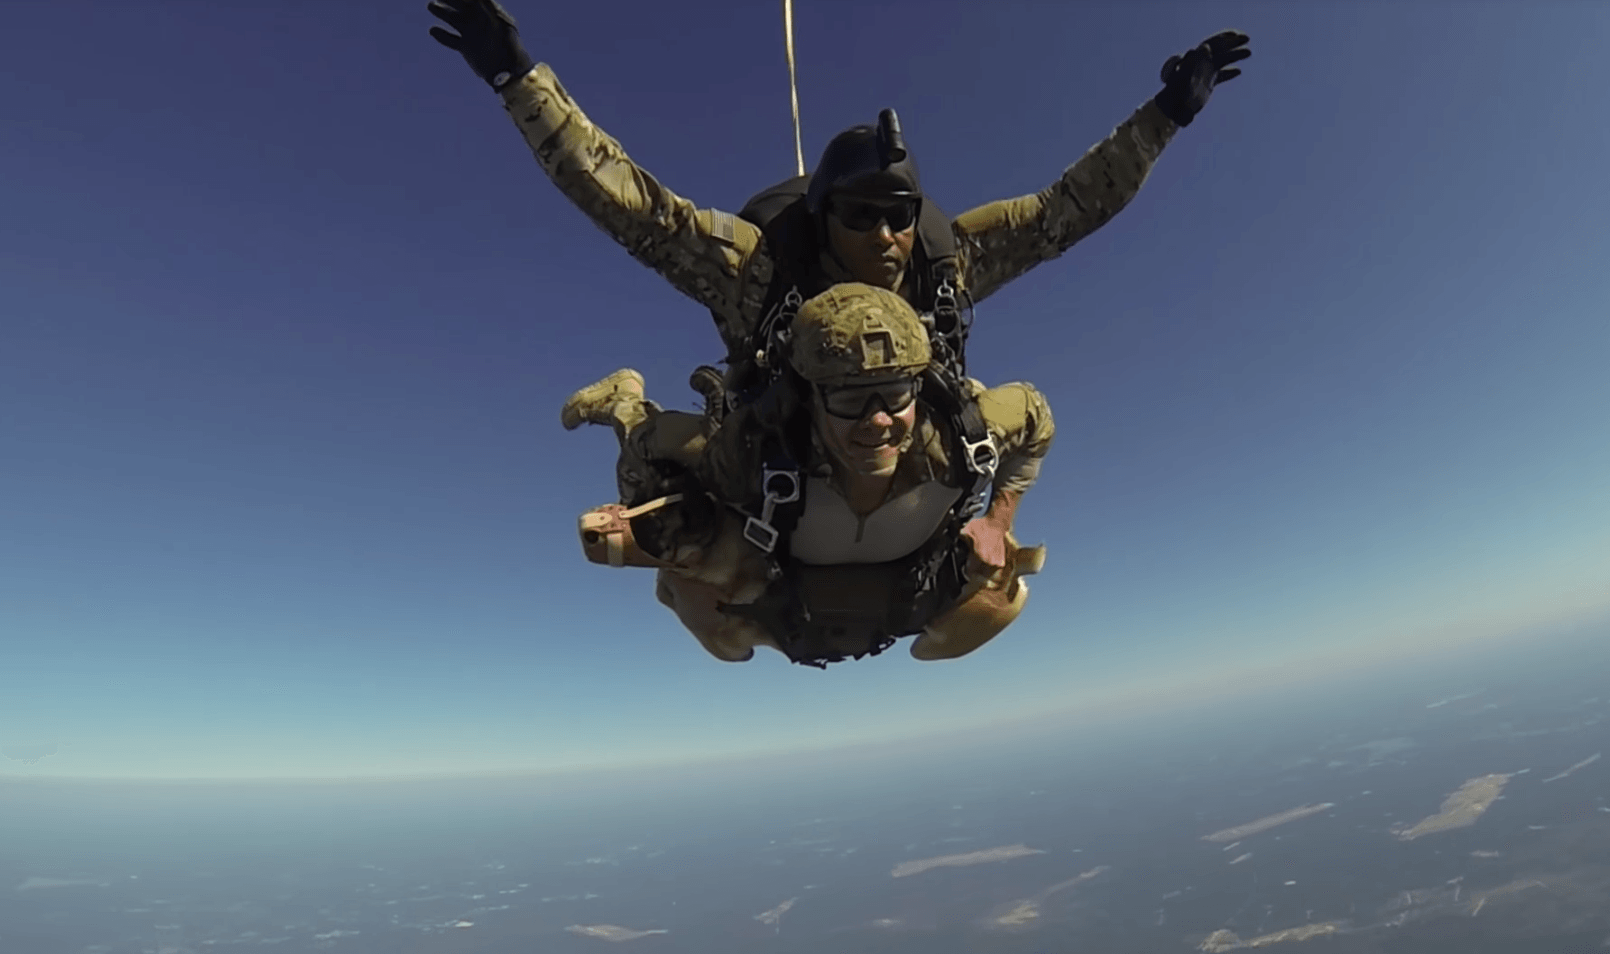 military Dog skydiving